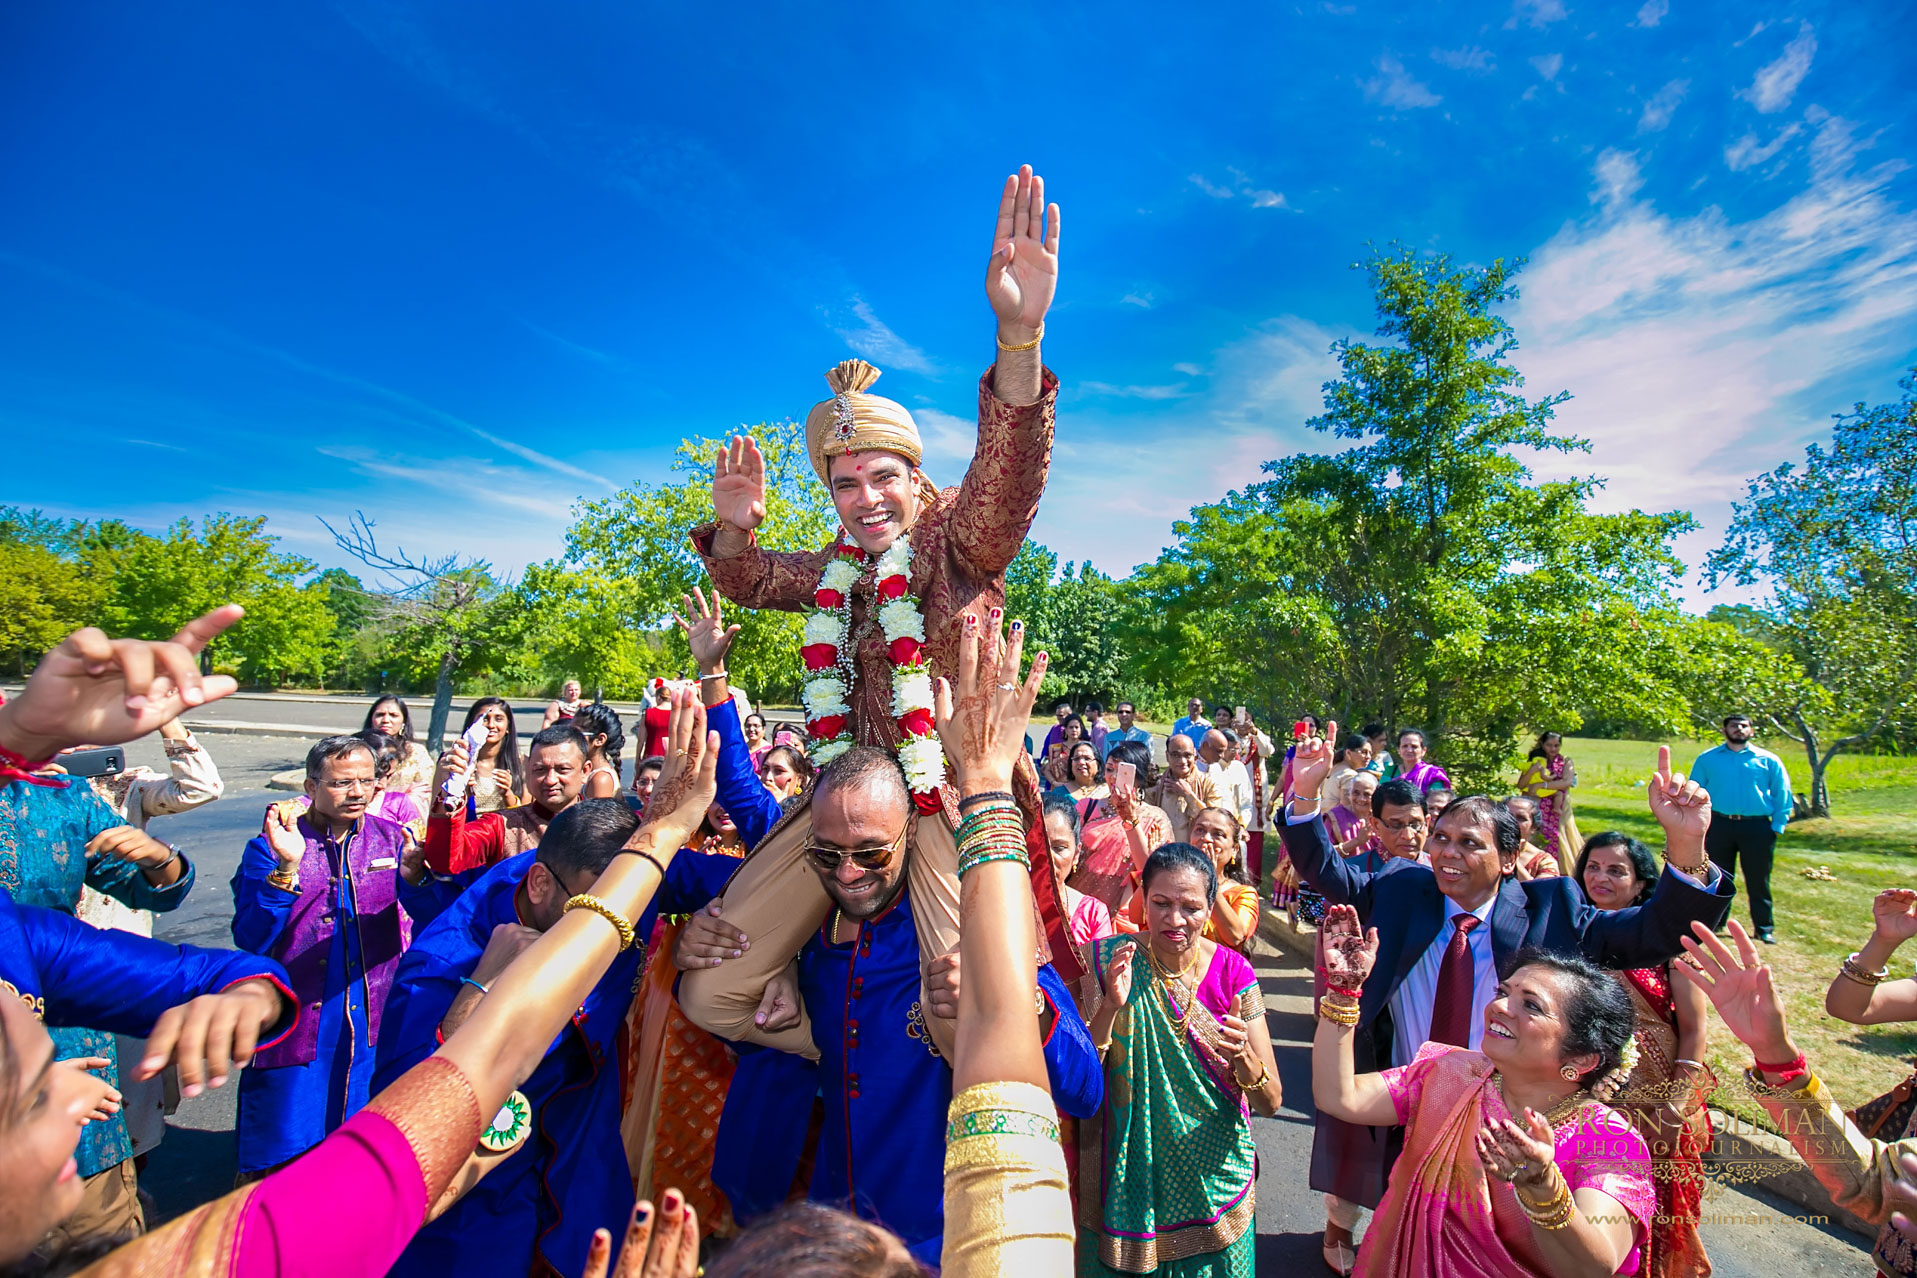 Best Baraat Wedding photos